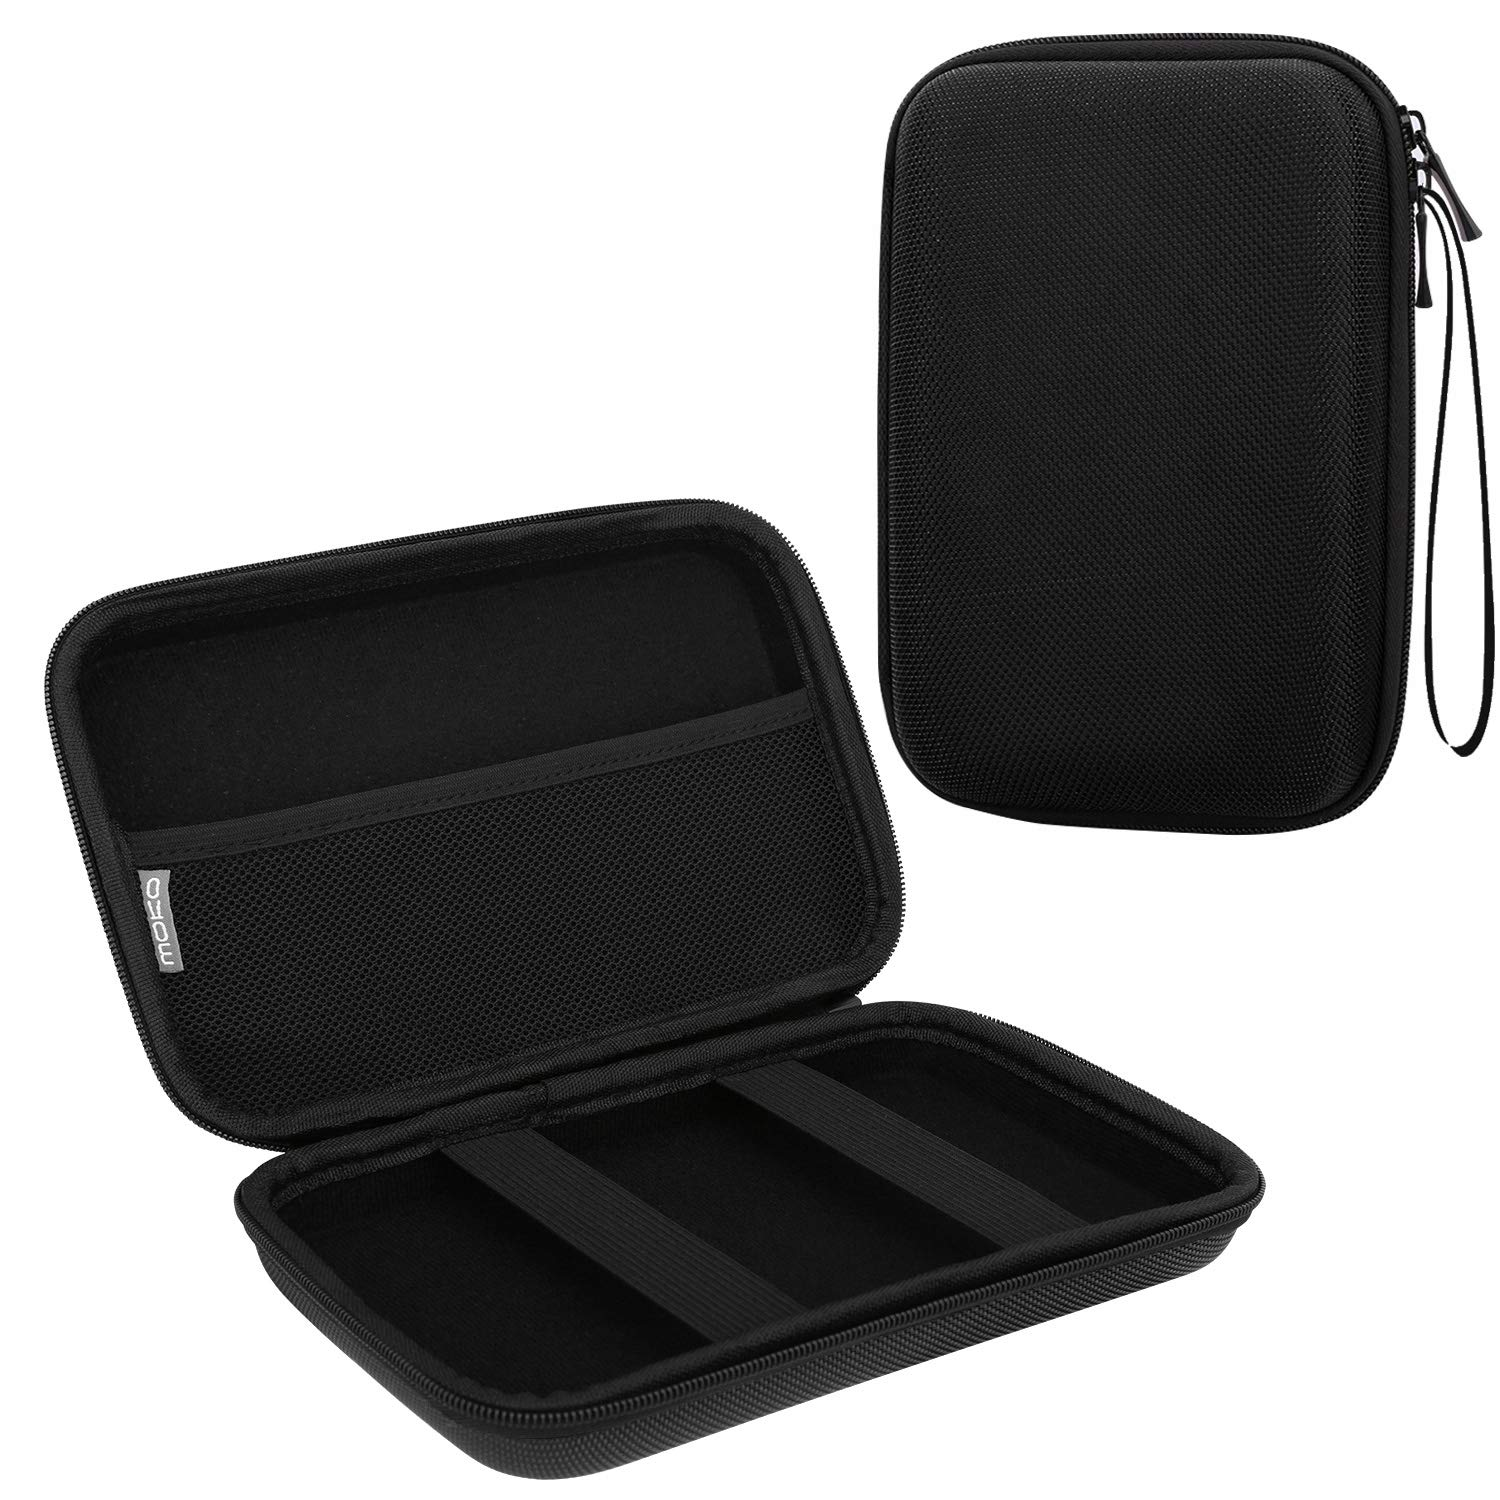 MoKo 7-Inch GPS Carrying Case, Portable Hard Shell Protective Pouch Storage Bag for Car GPS Navigator Garmin/Tomtom / Magellan with 7'' Display - Black